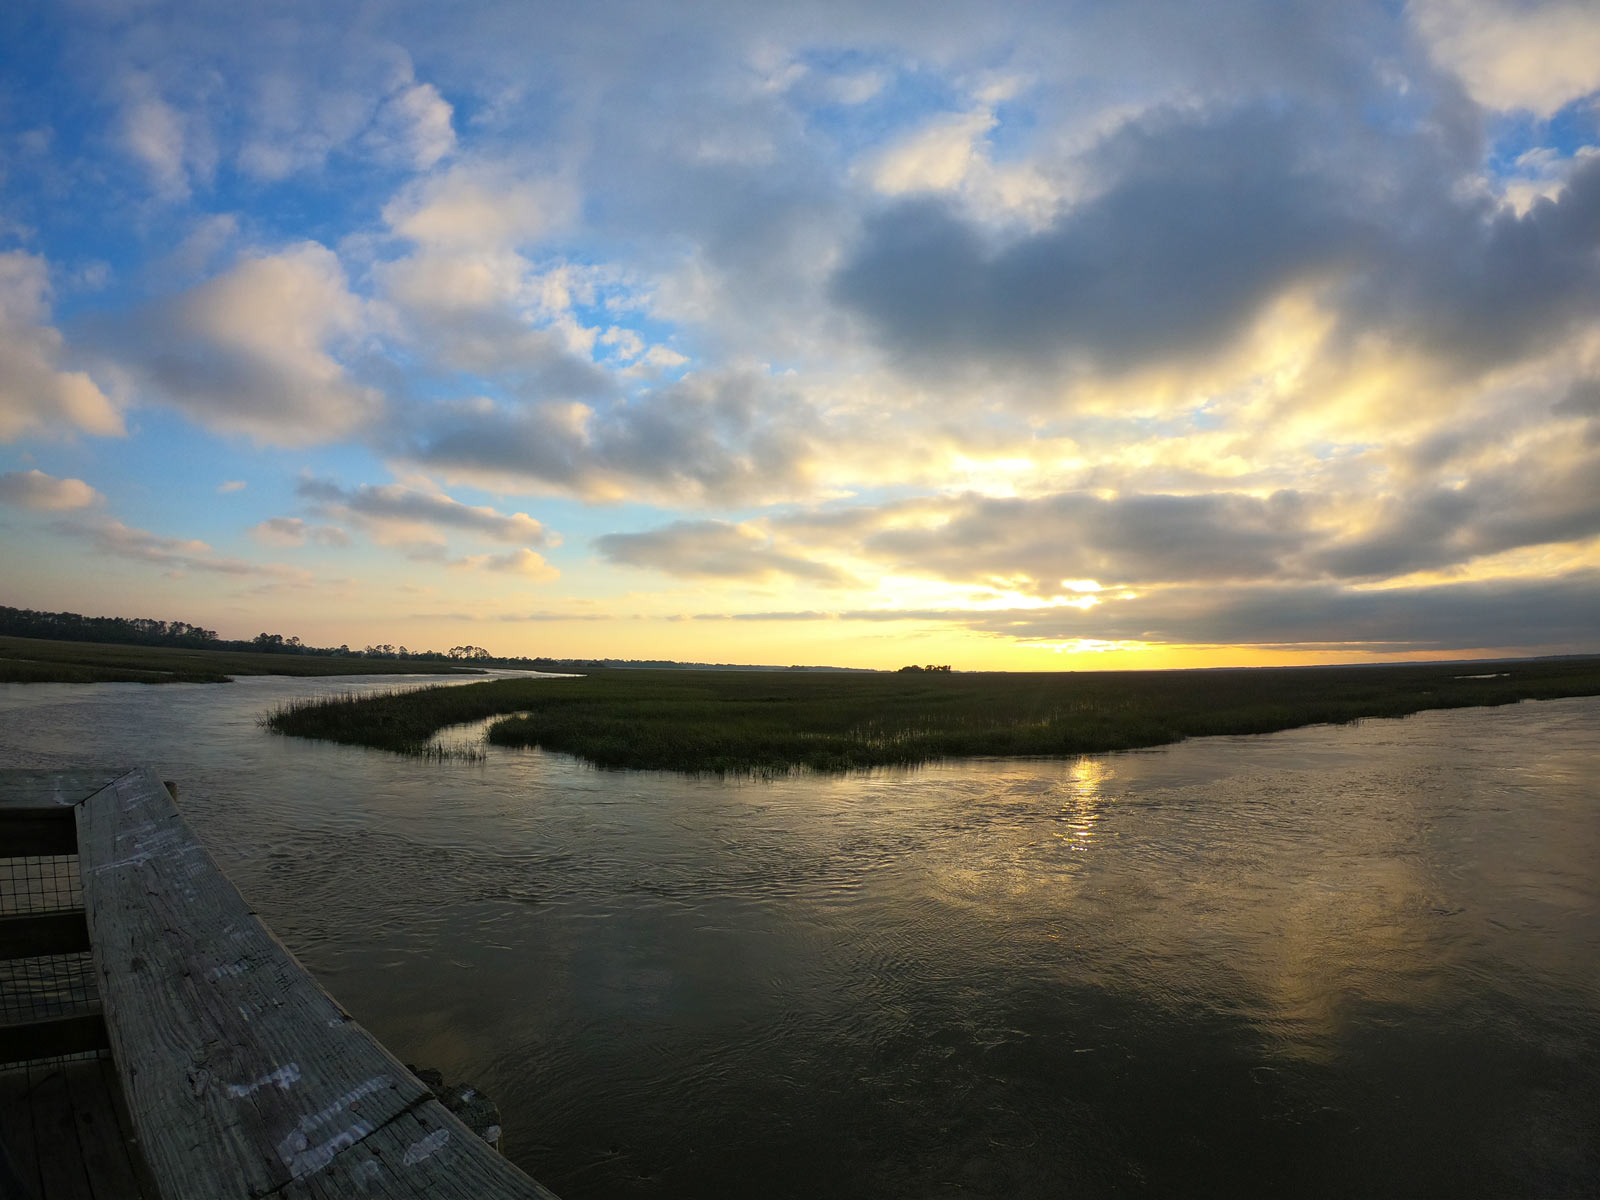 Sunset over the salt marshes at the Marshwalk Boardwalk Trail deck